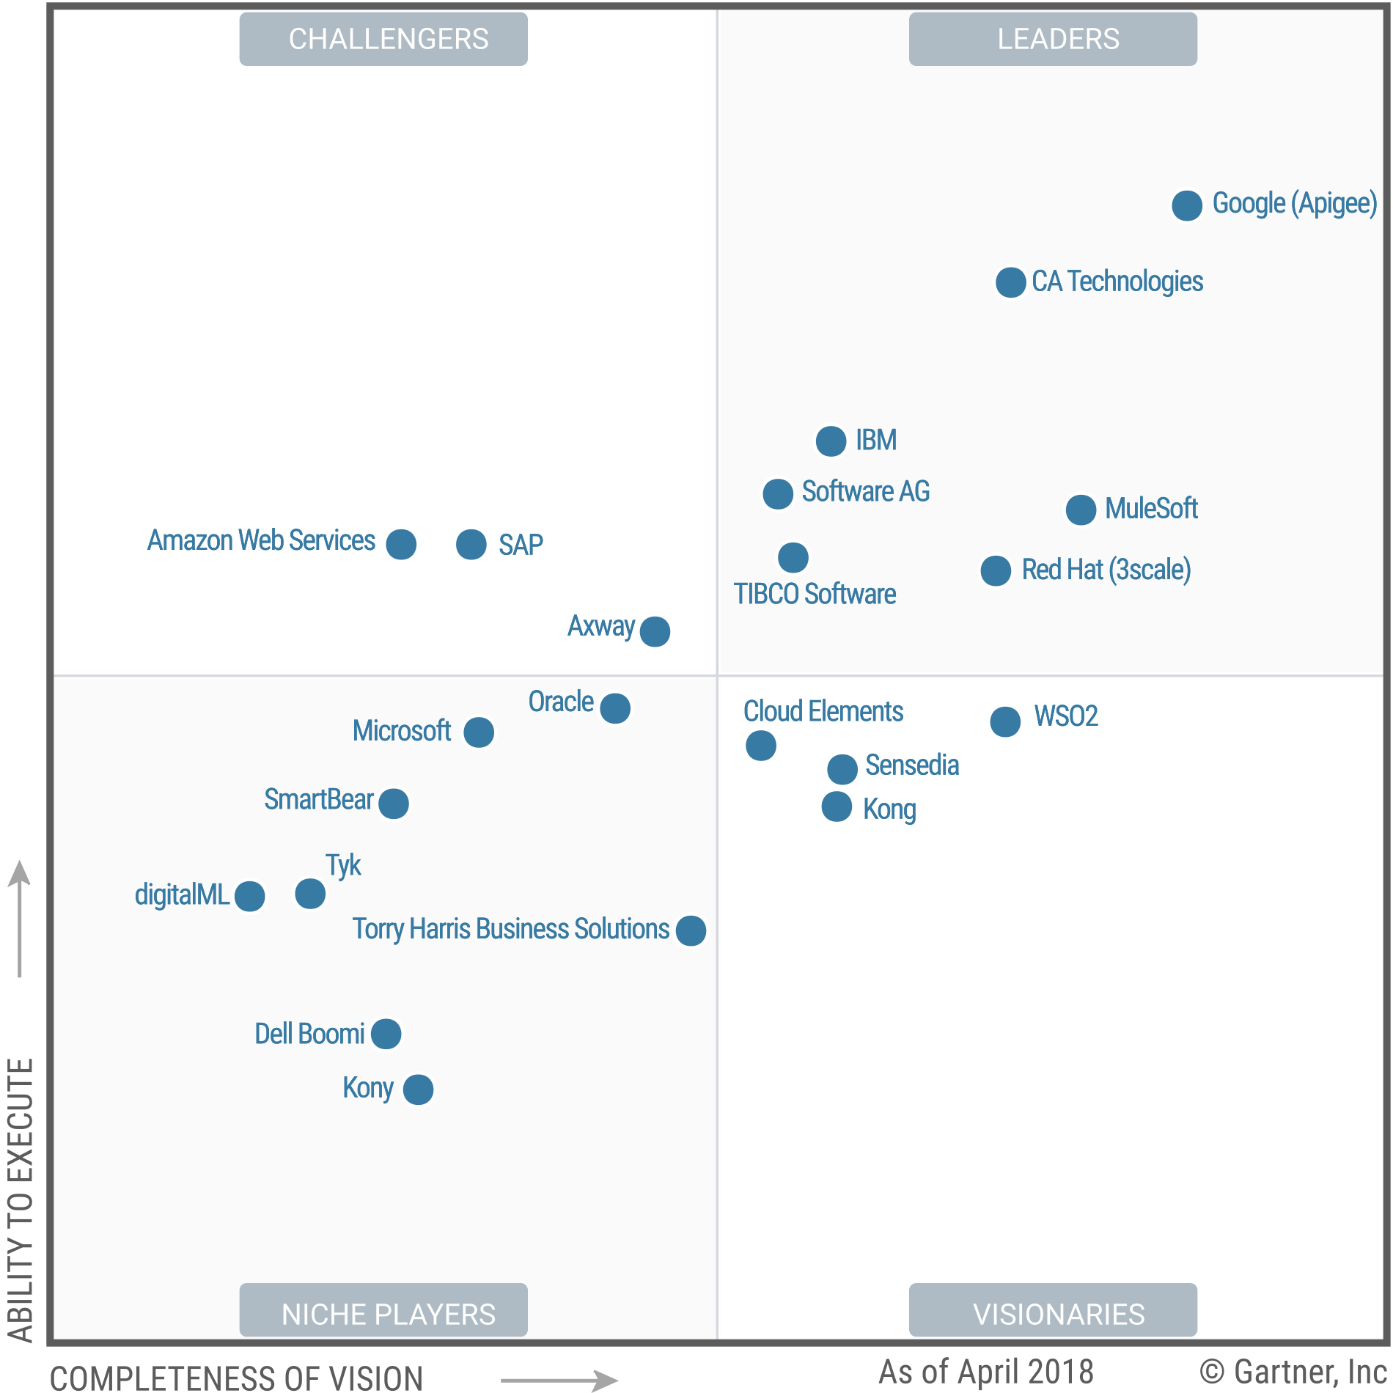 Top companies that featured in Leaders Quadrant for Full